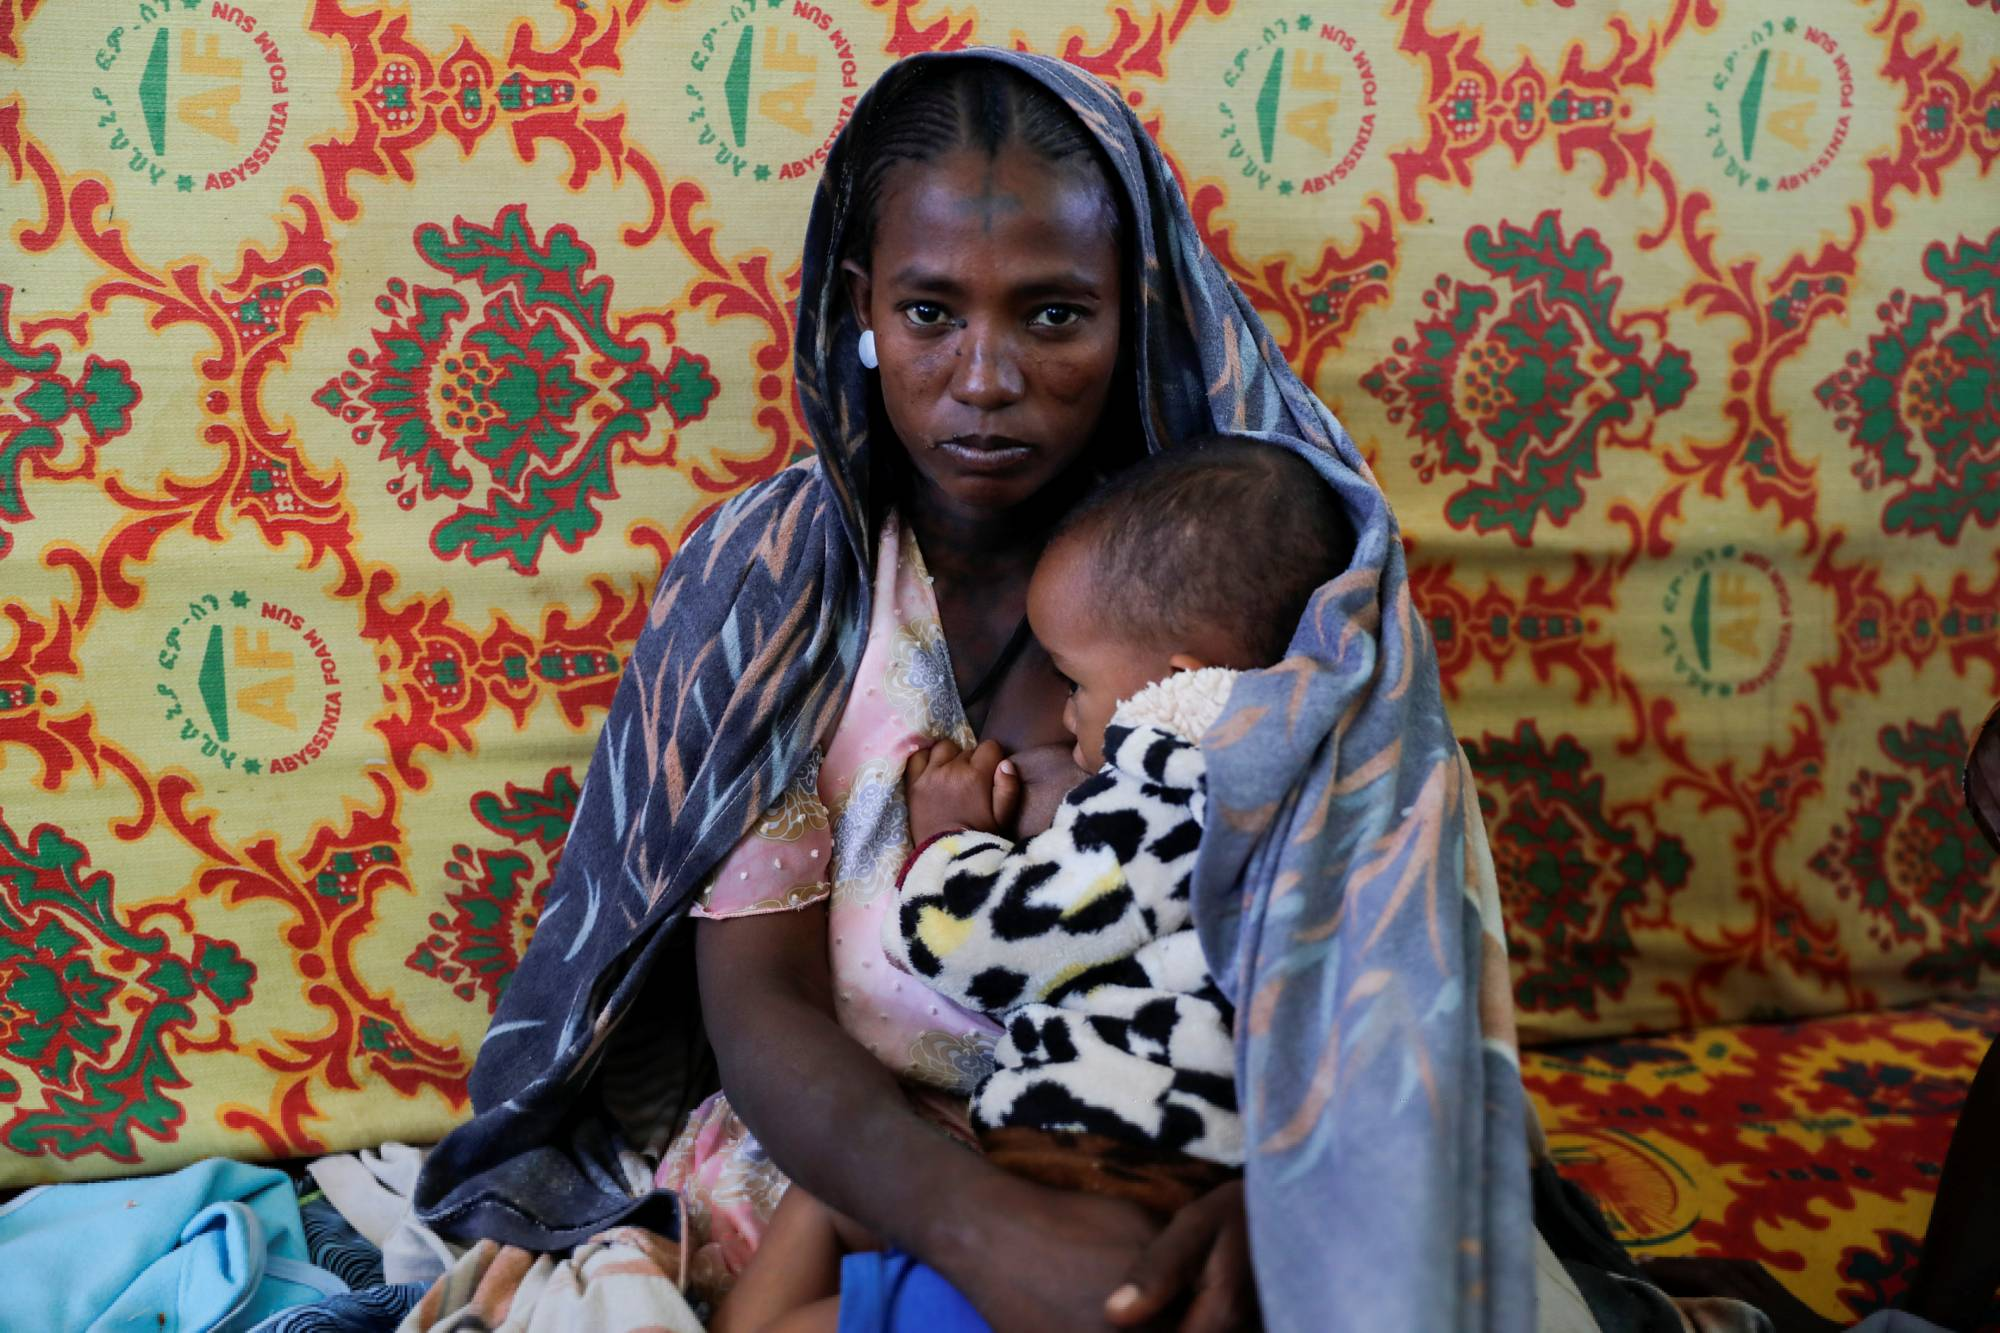 A woman holds an infant at the Adiha secondary school, which was turned into a temporary shelter for people displaced by conflict, in the city of Mekelle, in Ethiopia's Tigray region, on March 12. | REUTERS